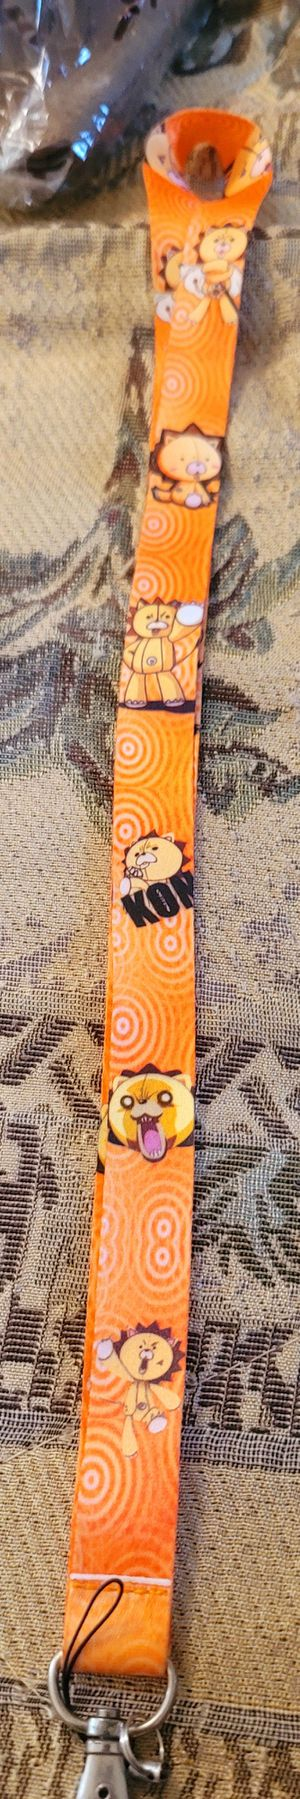 KON BEAR 🐻 Lanyard from mystery 📦 in la habra off of Whittier and harbor for Sale in La Habra Heights, CA